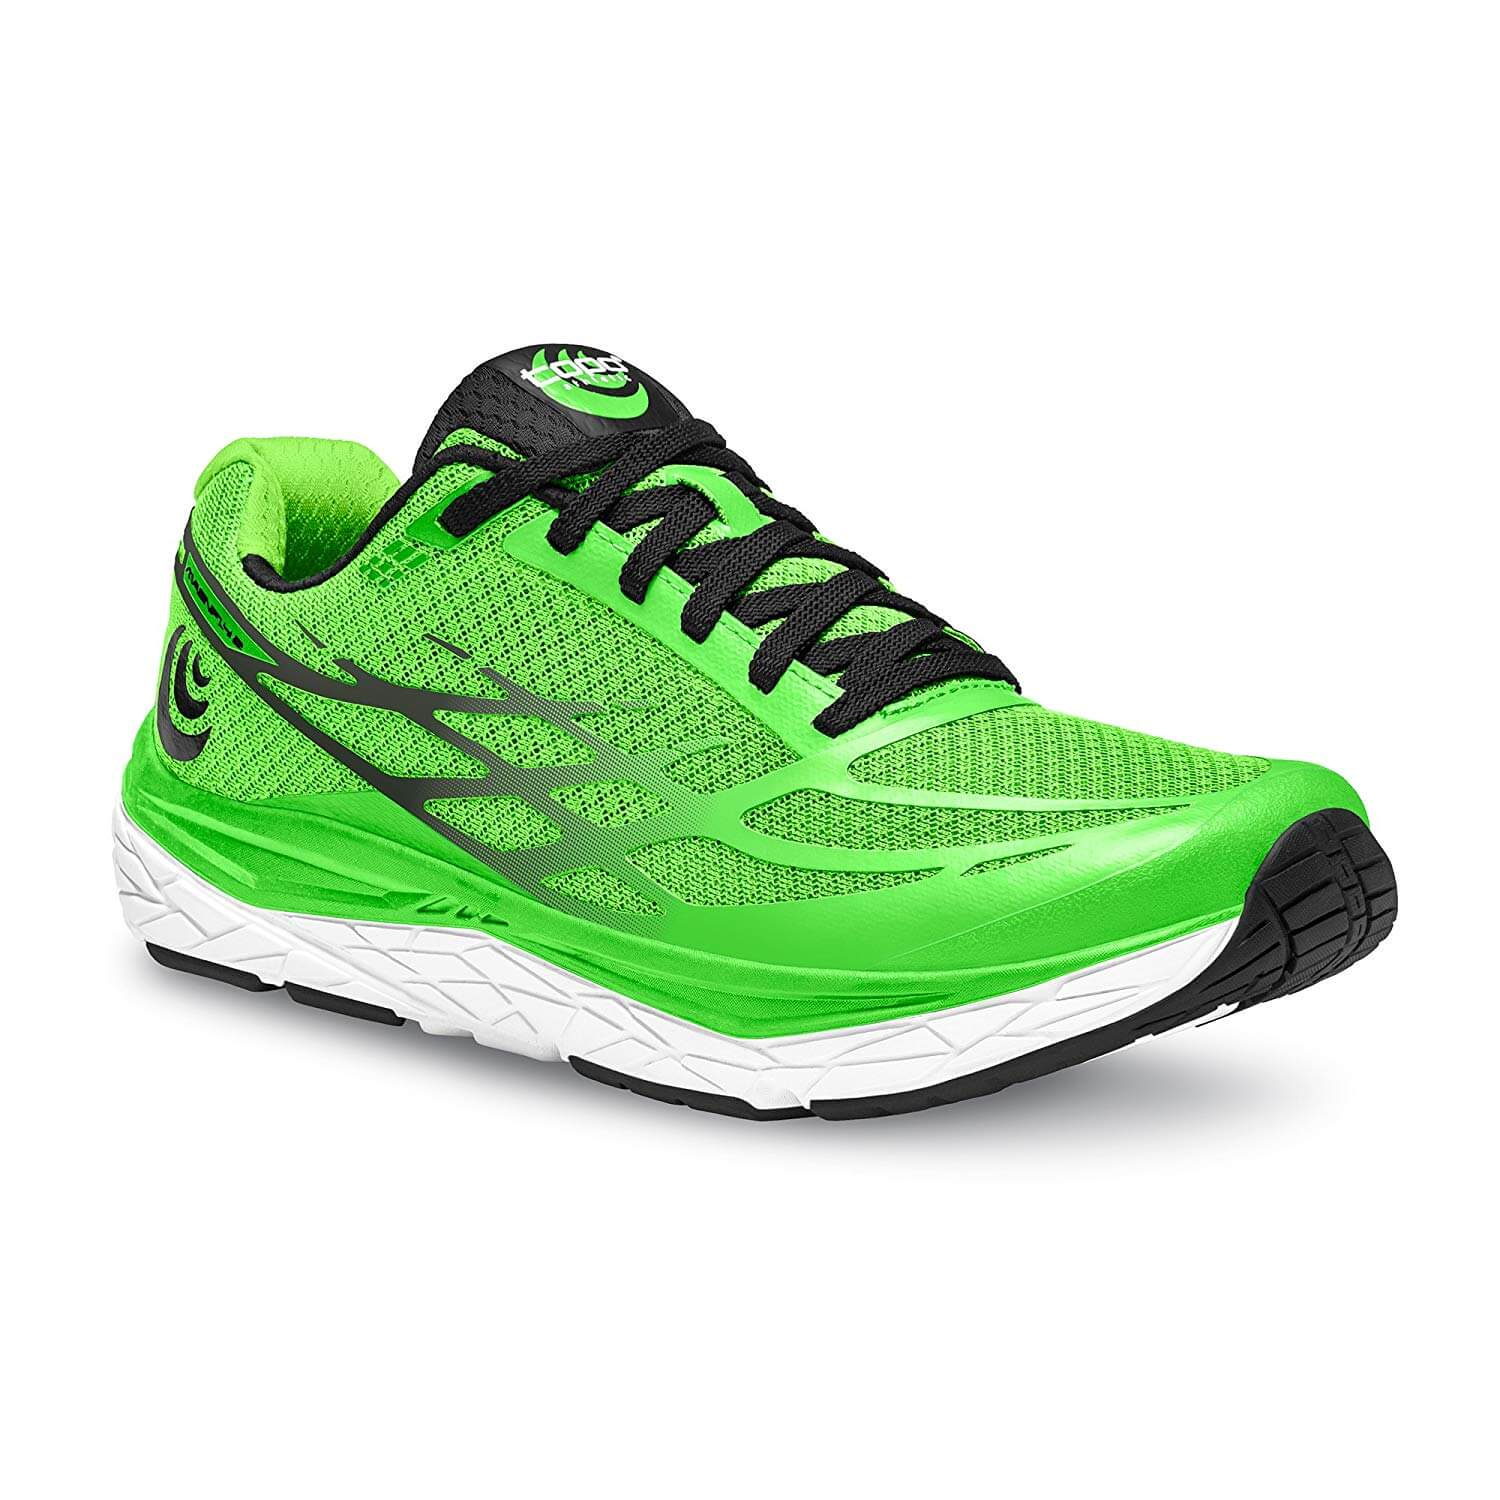 Topo Athletic Magnifly 2 RunnerClick